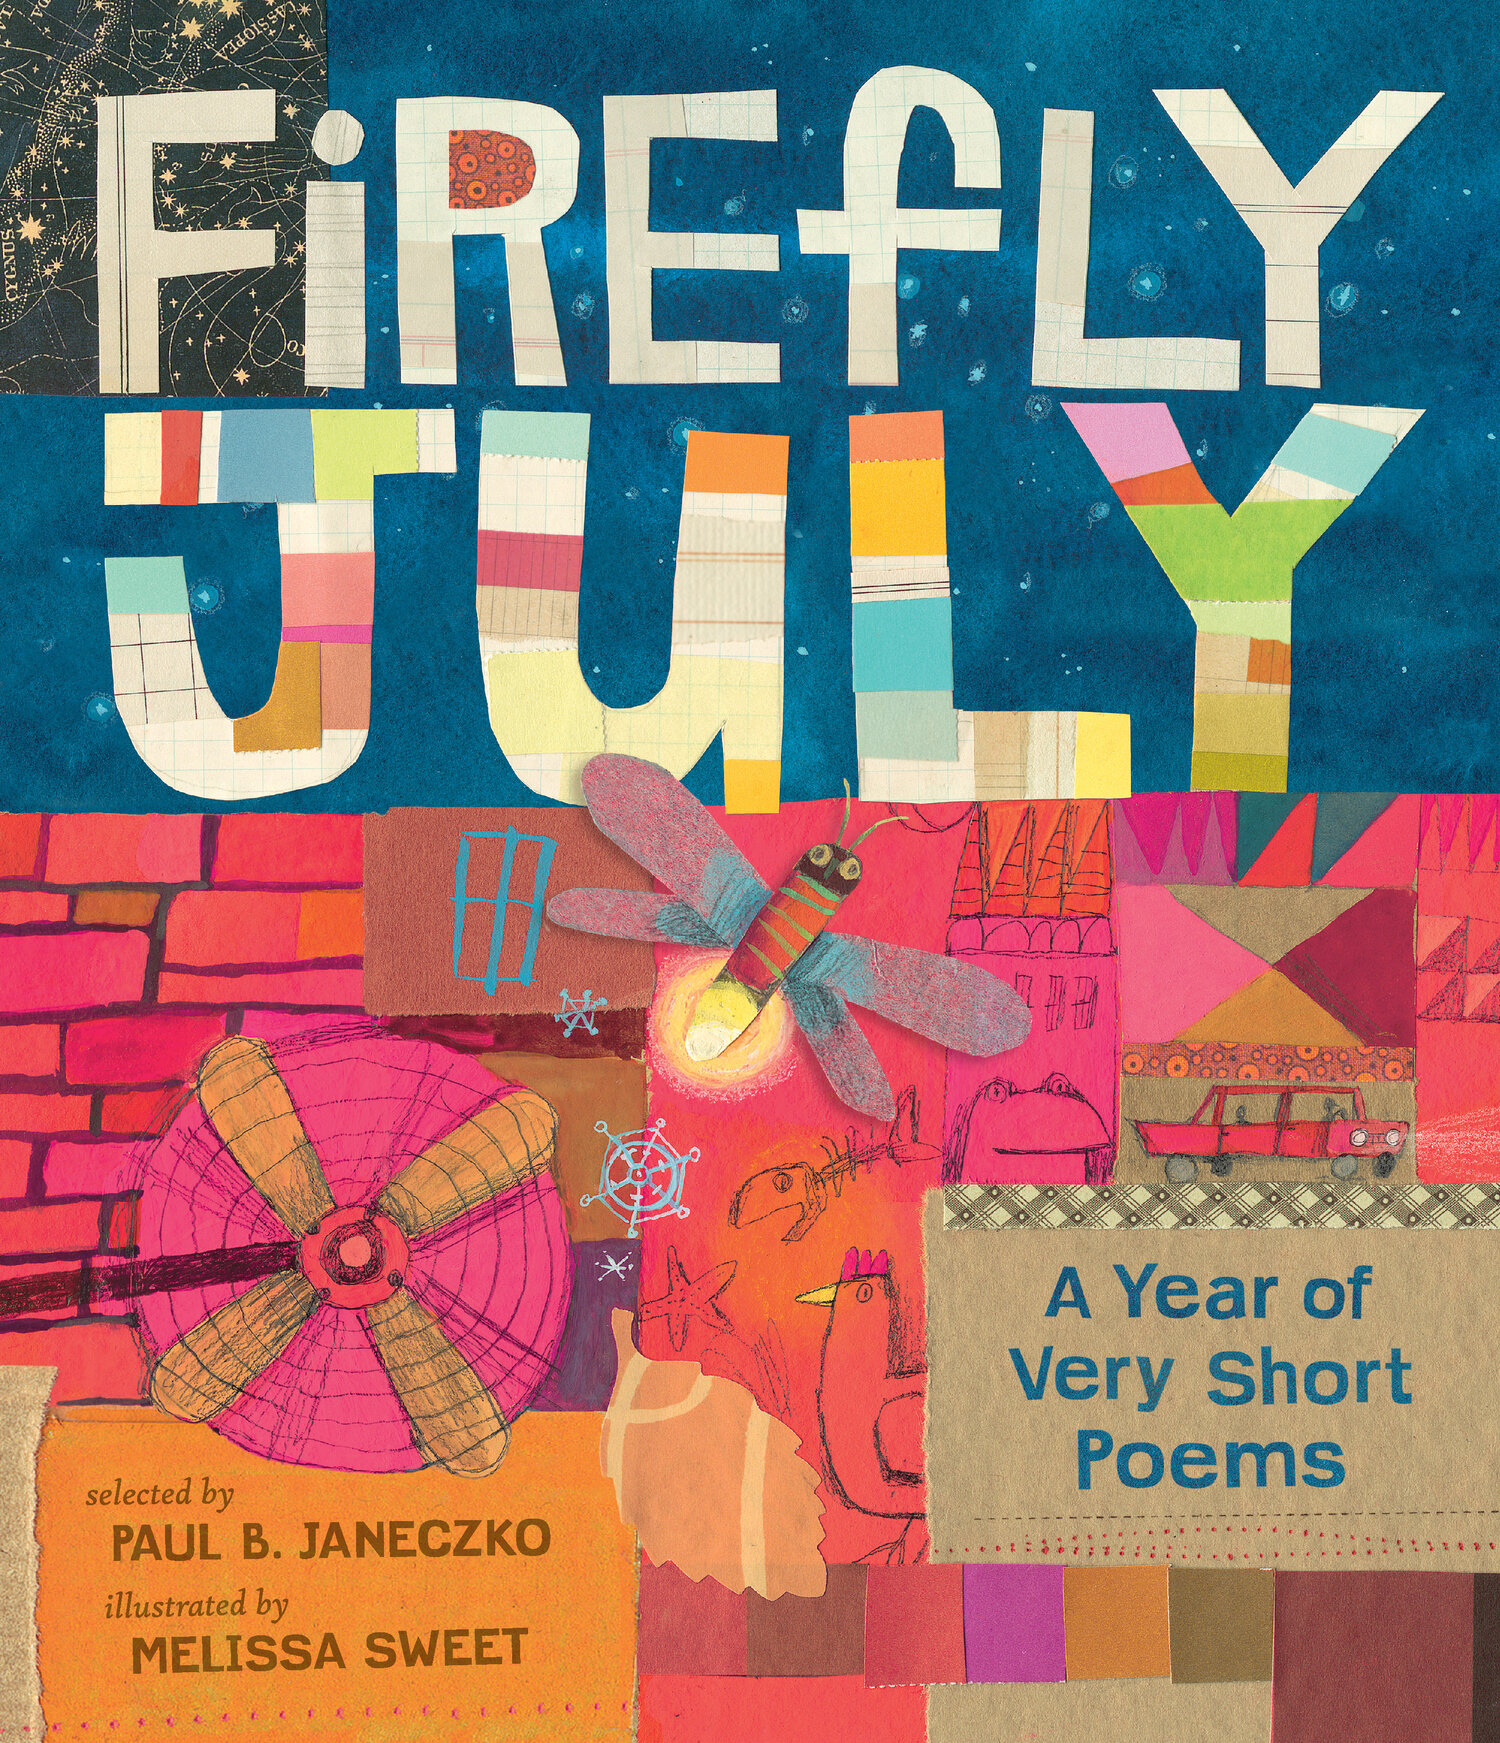 Poems from Firefly July: A Year of Very Short Poems. Compilation Copyright 2014 by Paul B. Janeczko. Illustrations Copyright 2014 by Melissa Sweet. Reproduced by permission of the publisher, Candlewick Press, Somerville, MA.